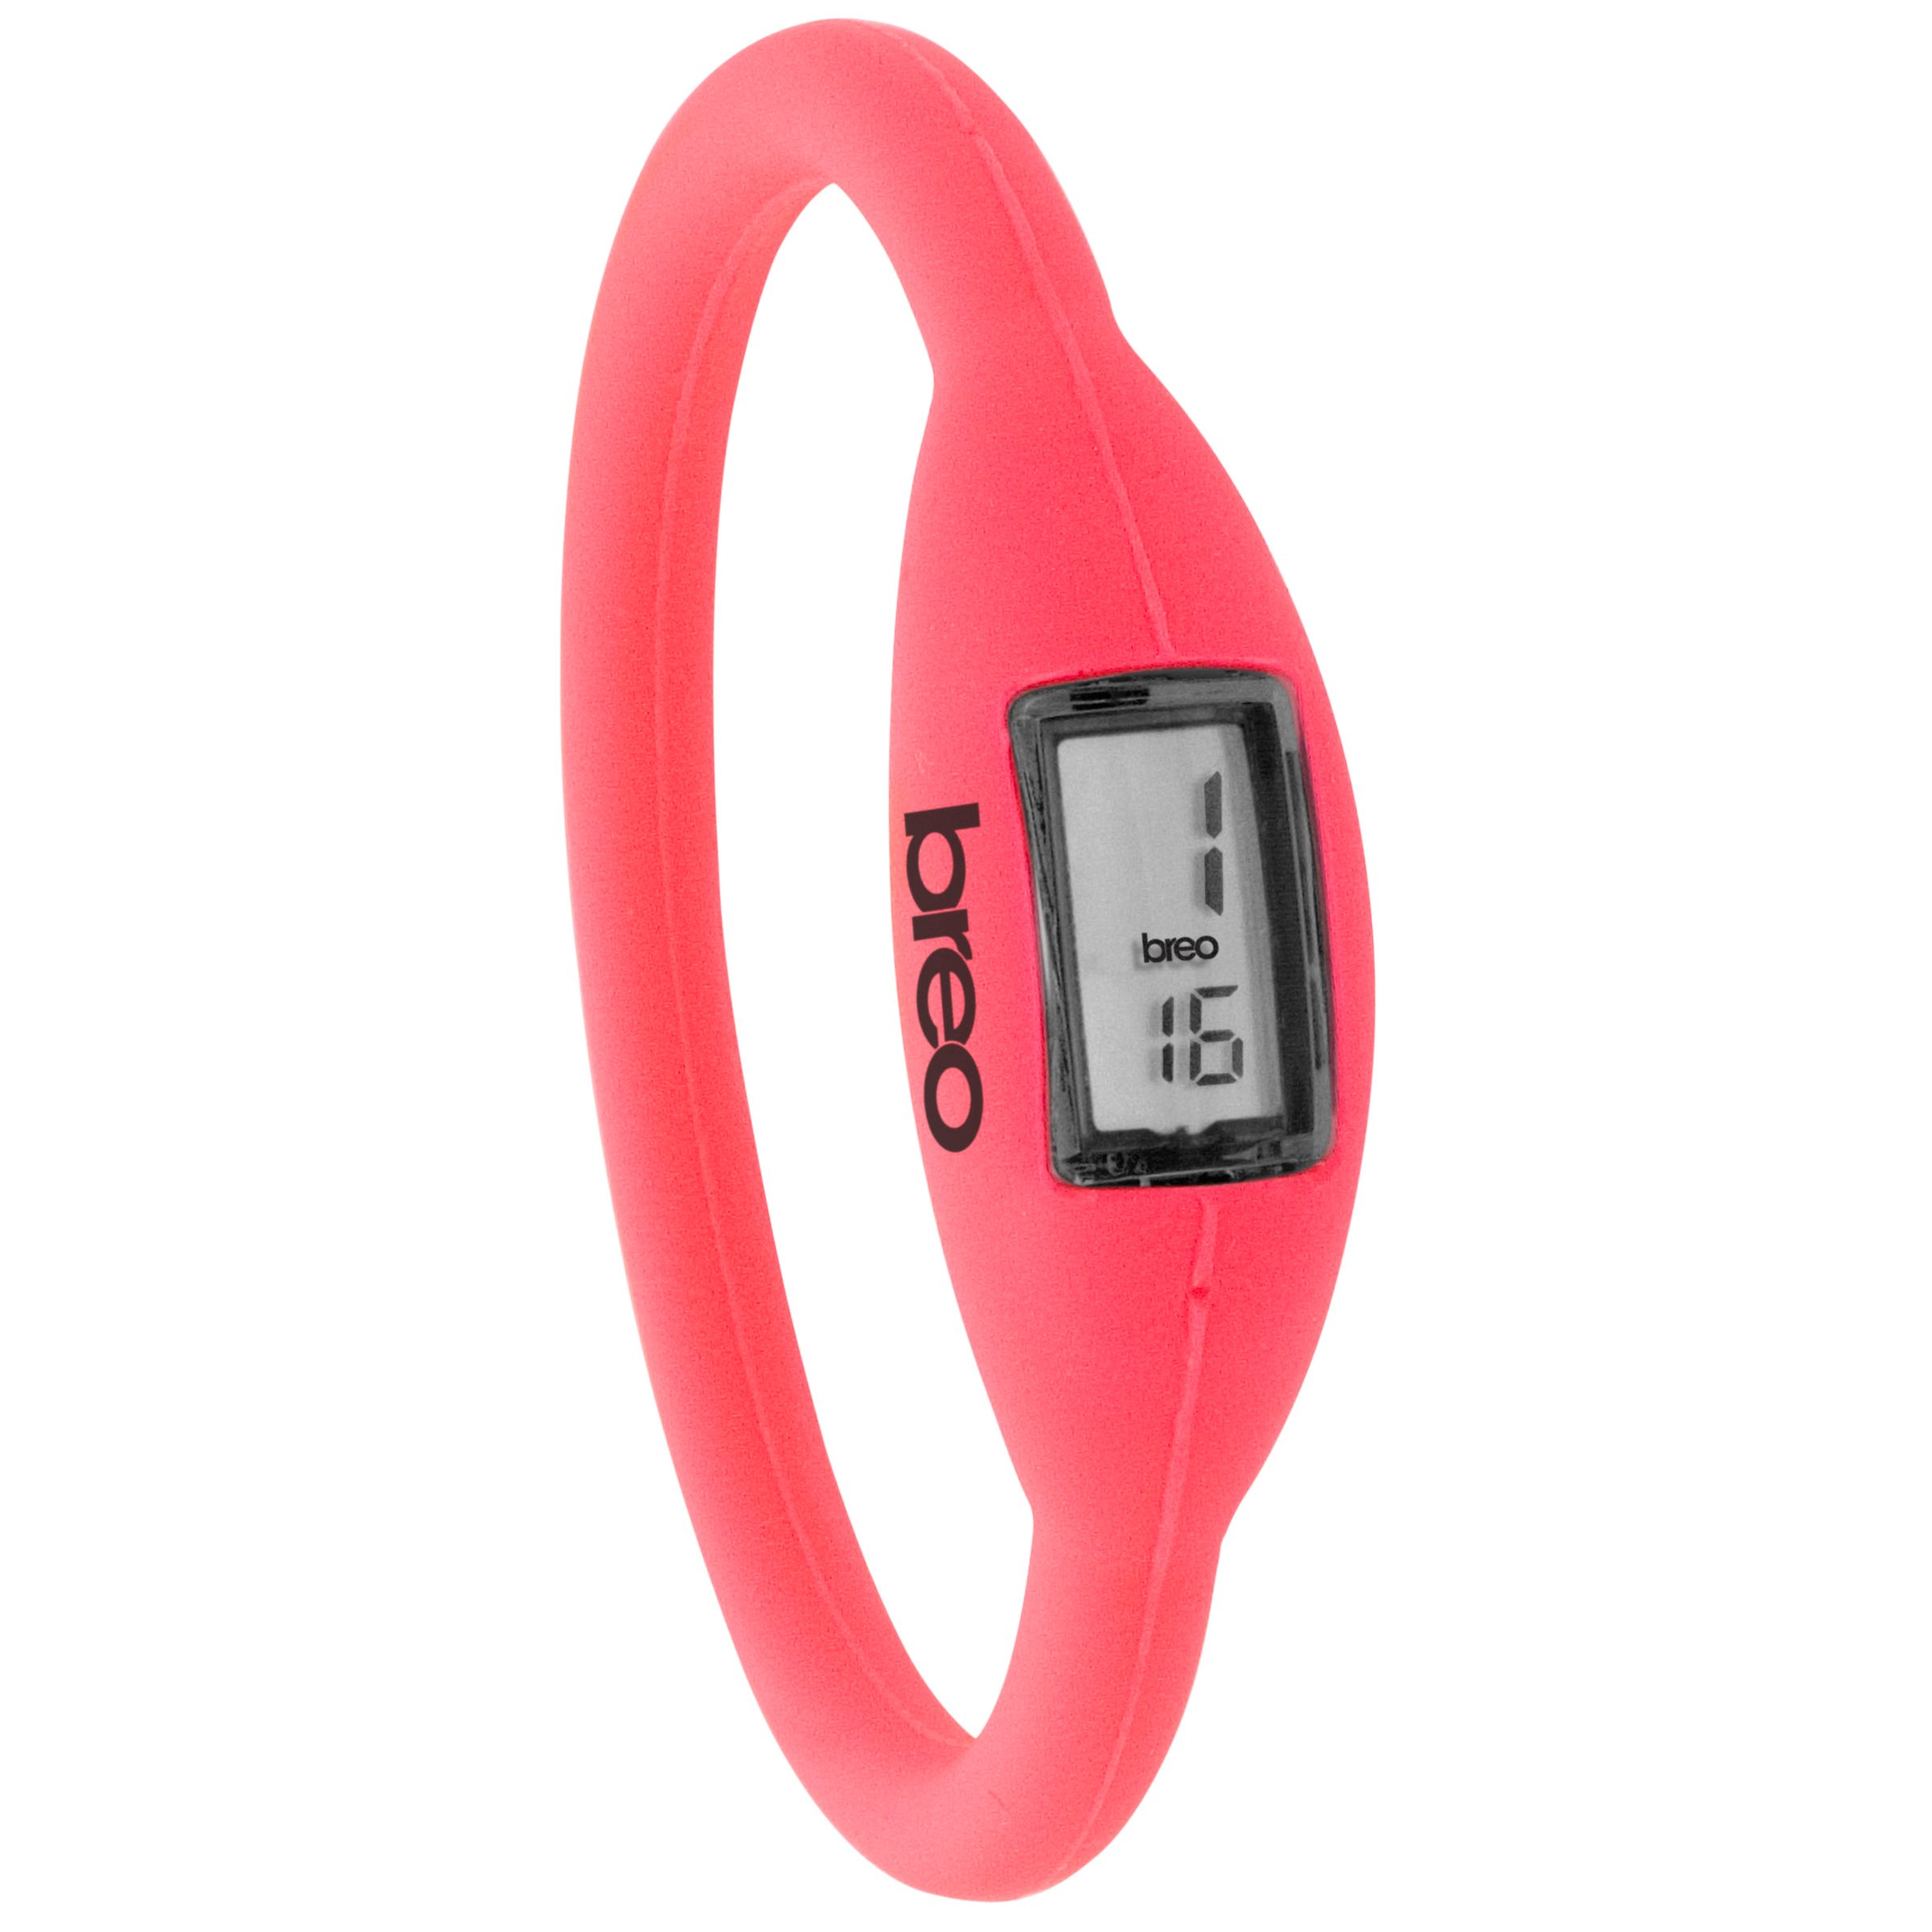 Breo Roam B-TI-NR3 Digital Watch, Fluro Pink